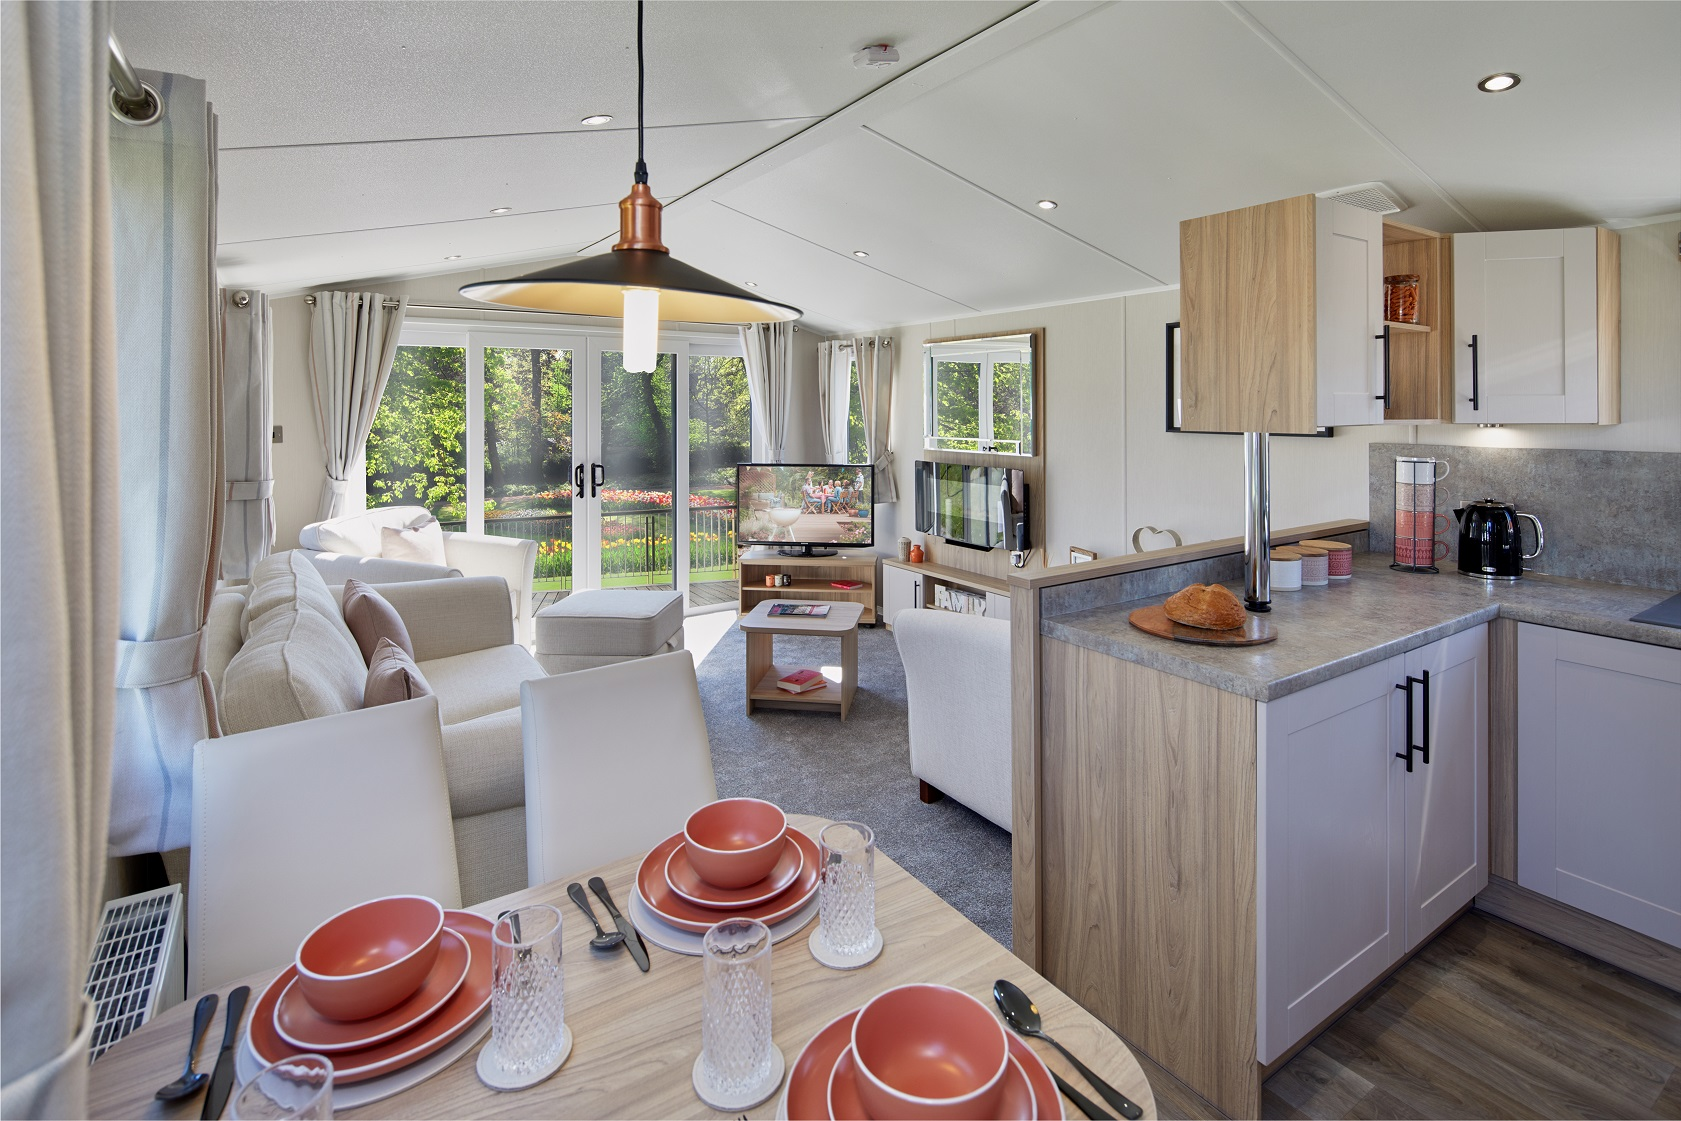 Willerby Manor: New Static Caravans and Holiday Homes for Sale, Clifton, Morpeth Large Image 1